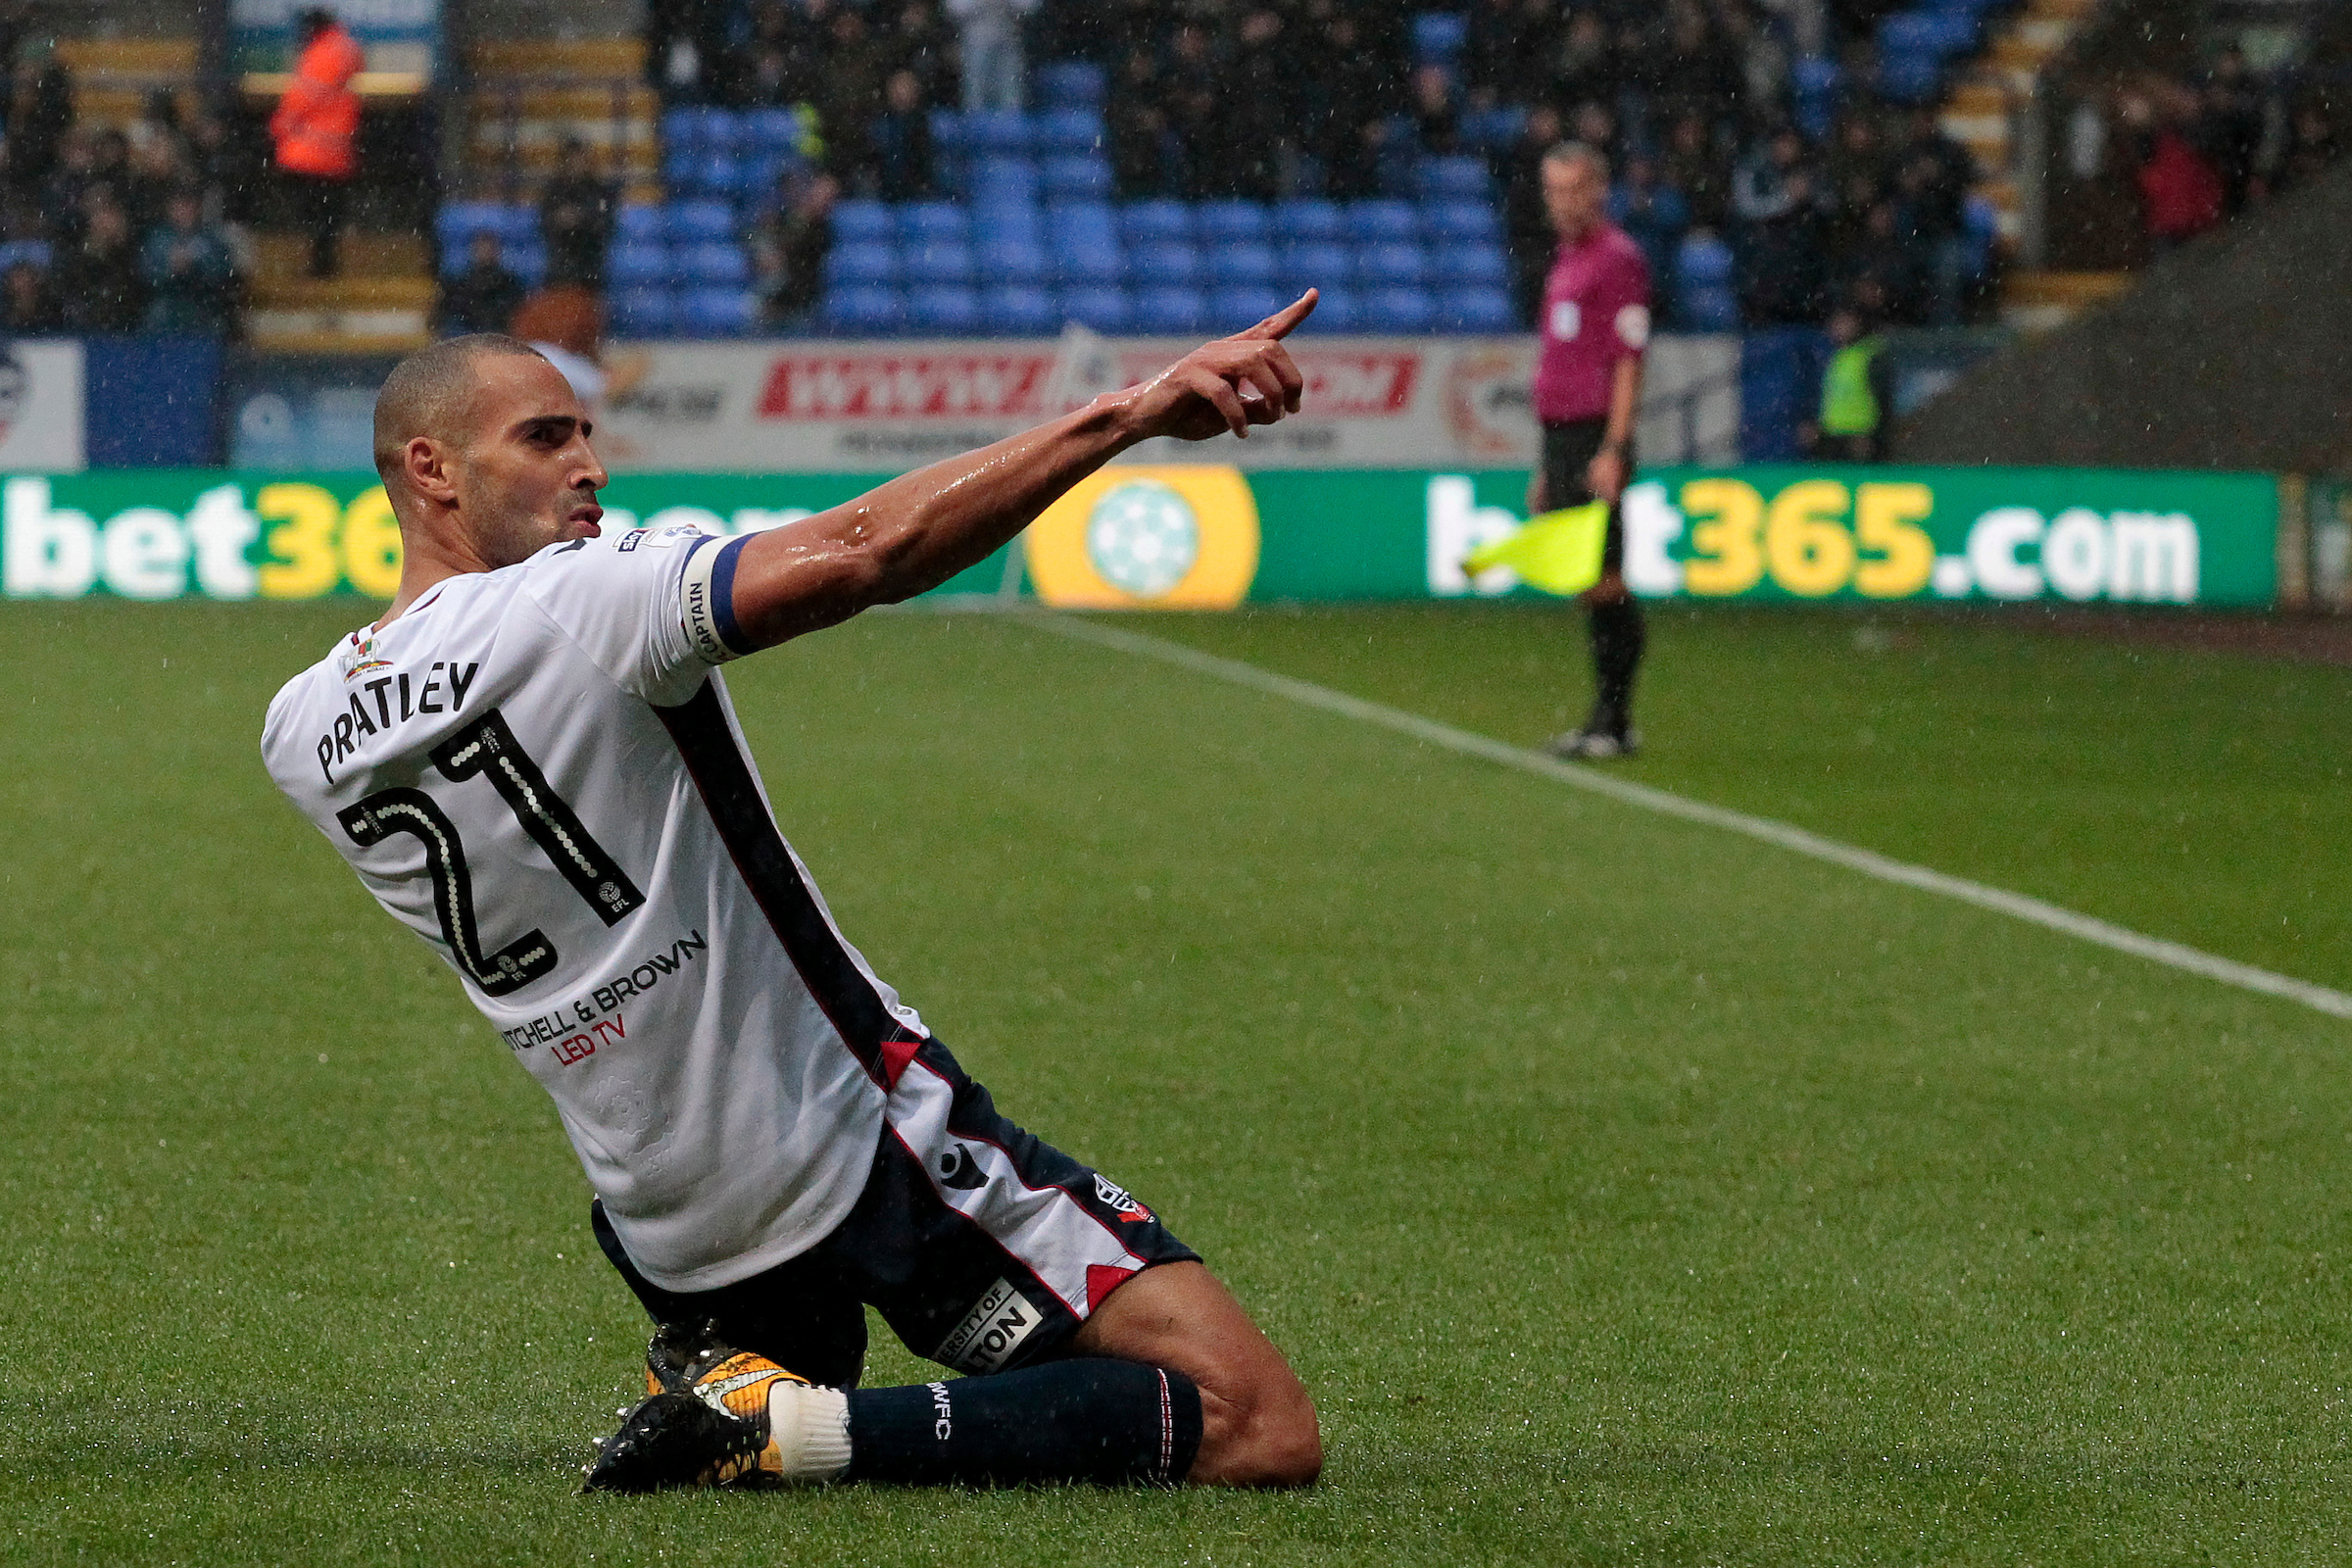 It's a point: Darren Pratley's goal was not enough for victory against QPR